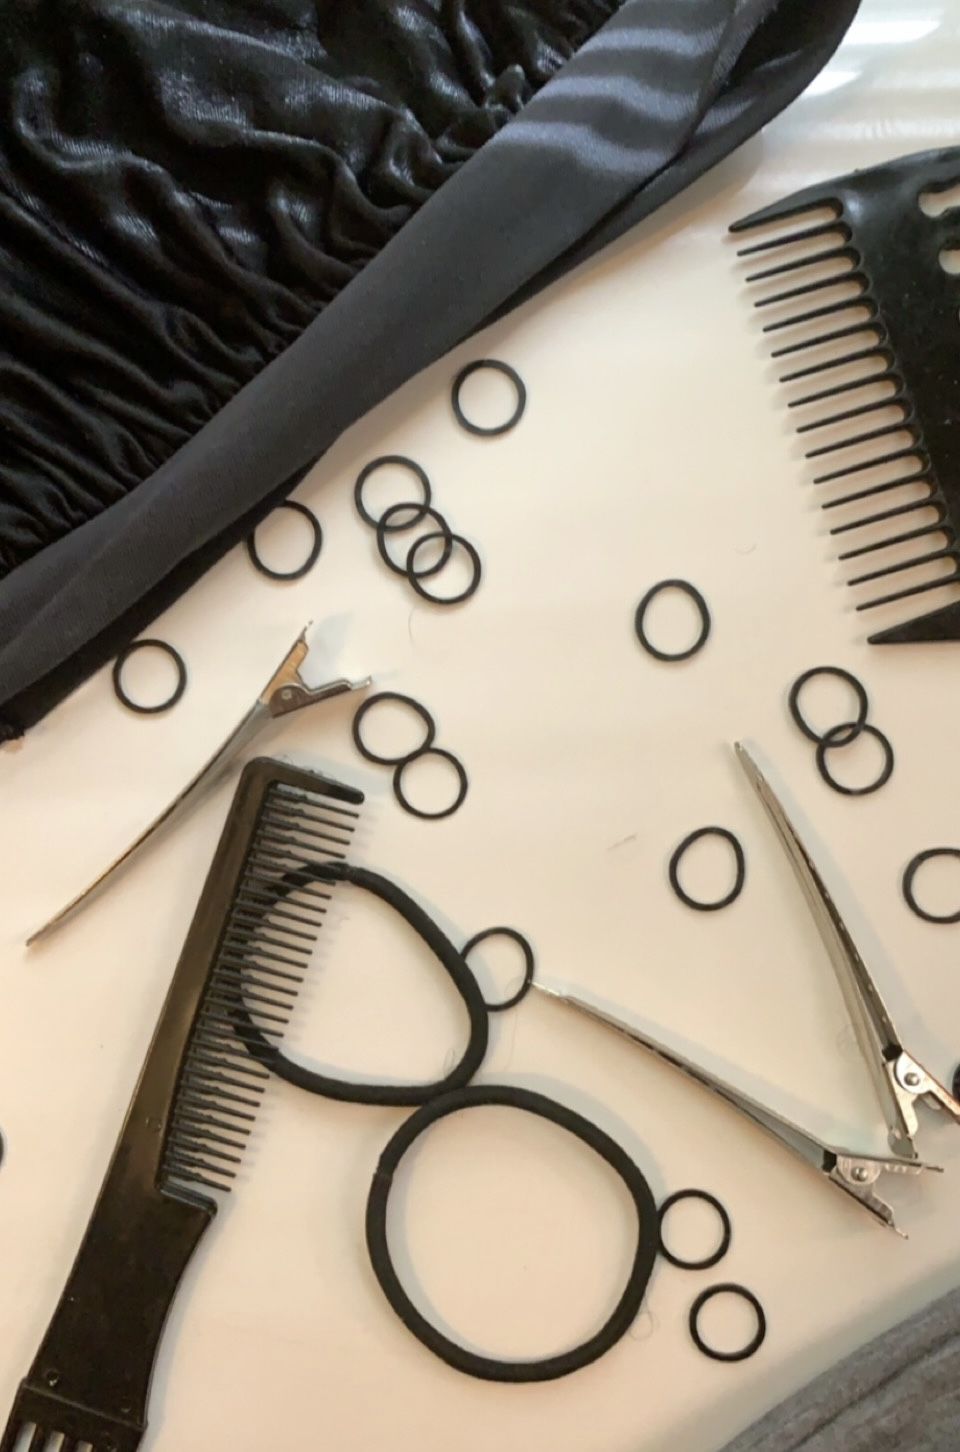 Haircare products, including ponytails, rubber bands, combs, clips, and a bonnet. Photo courtesy of the author.